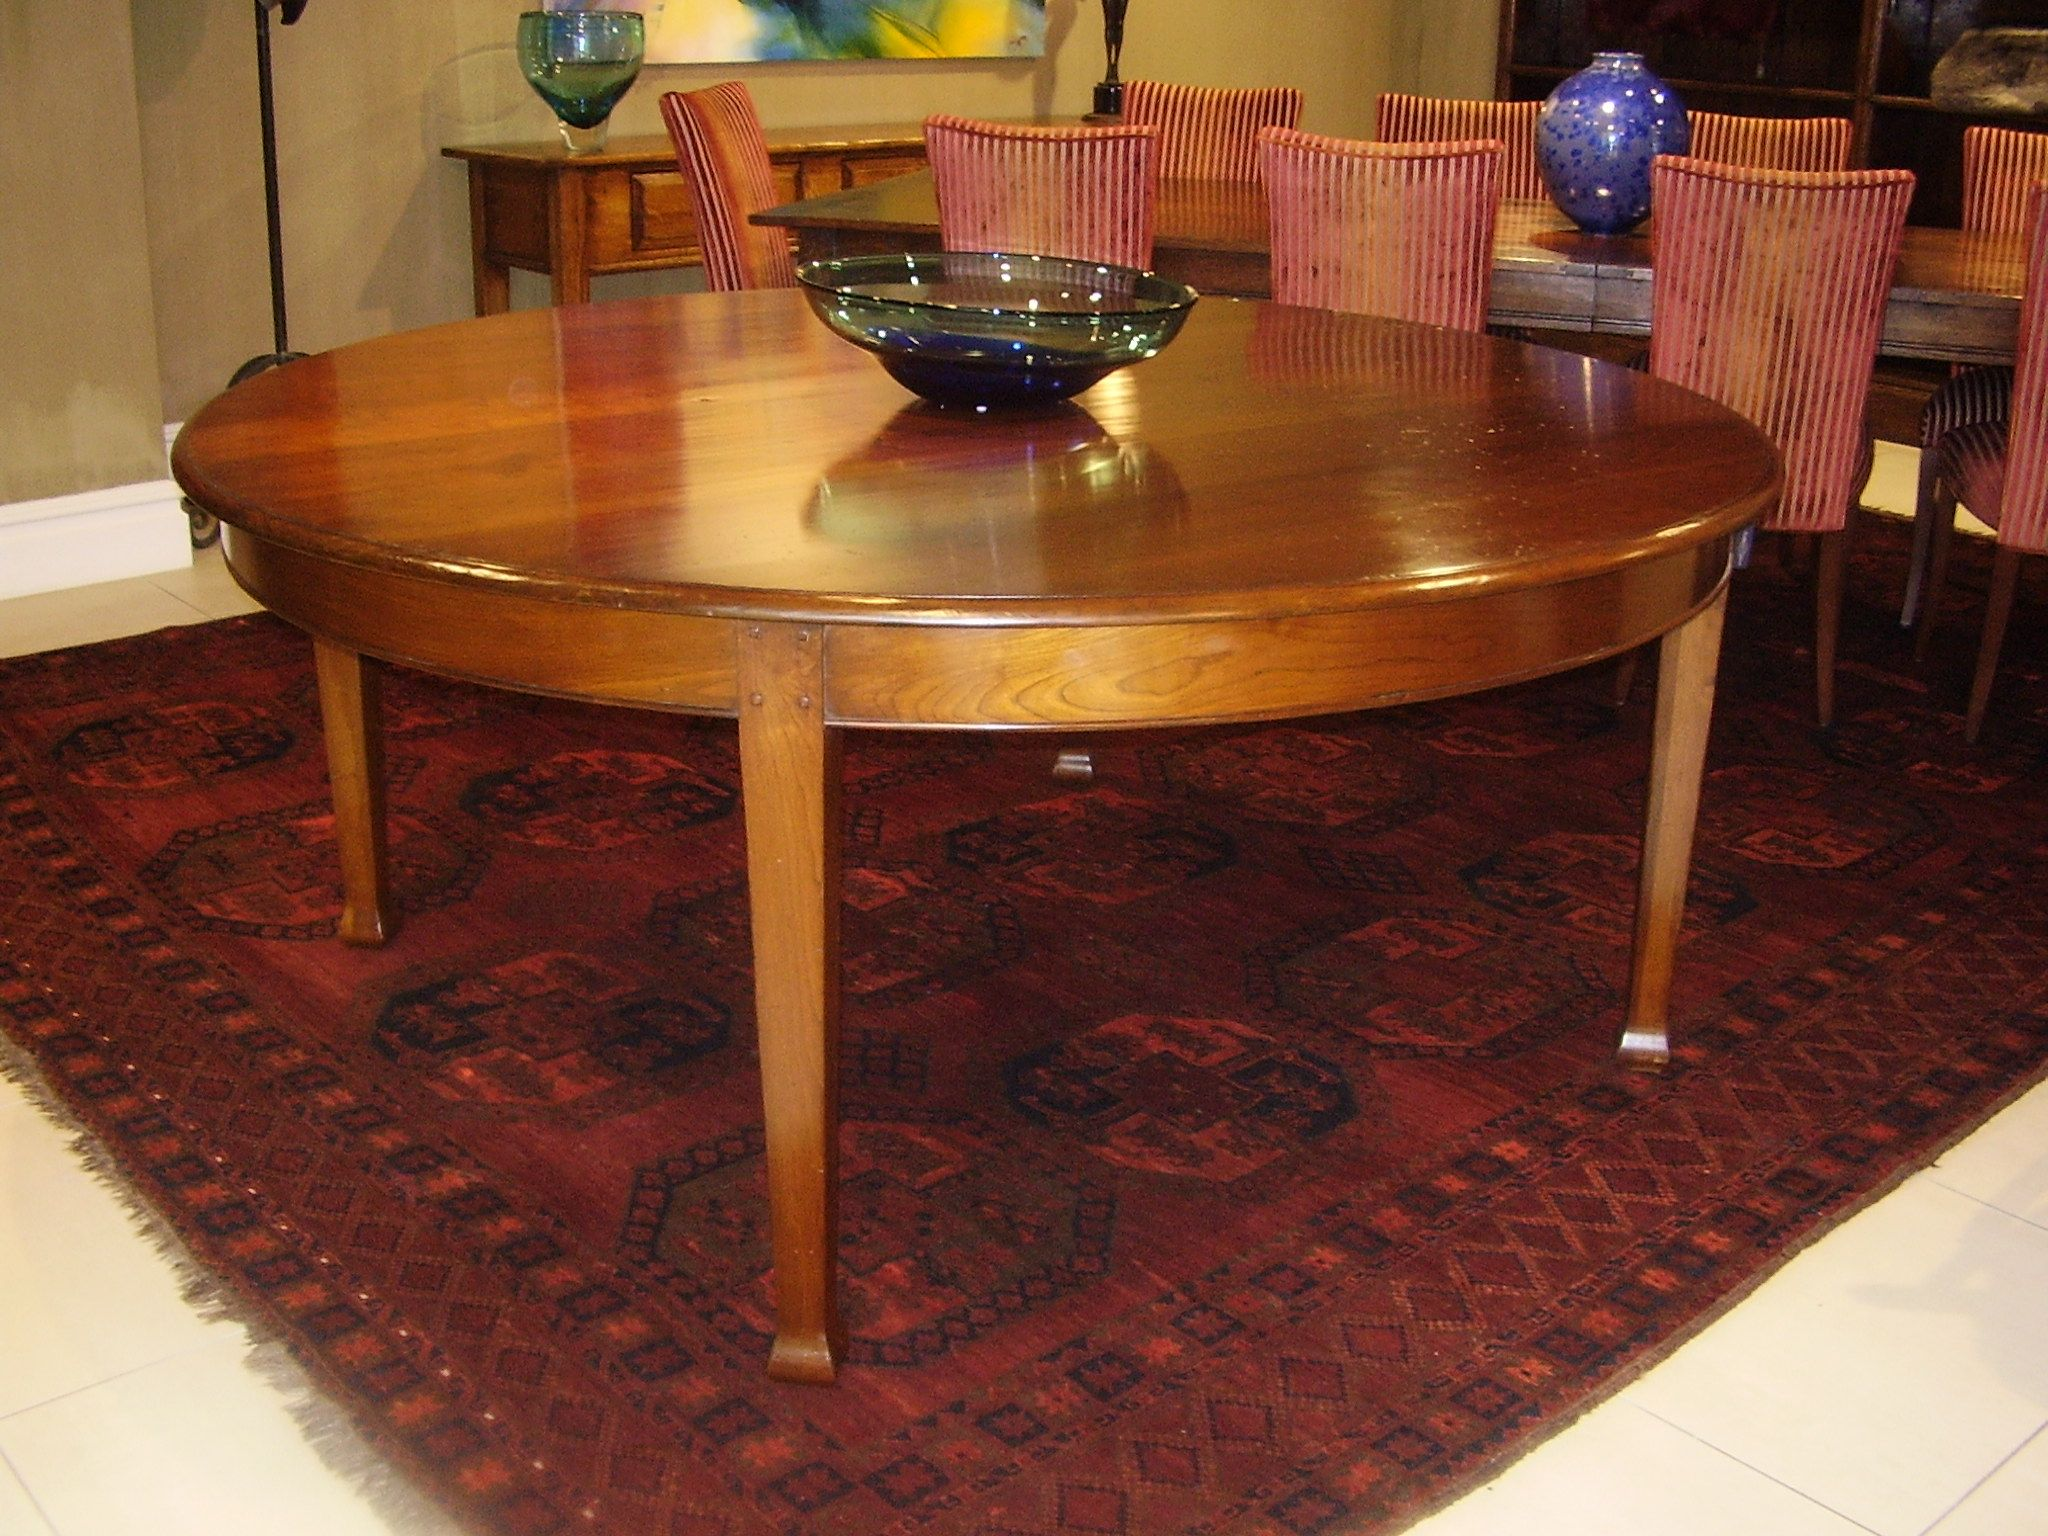 Circular Dining Table Cherry Wood Cherry Wood Furniture